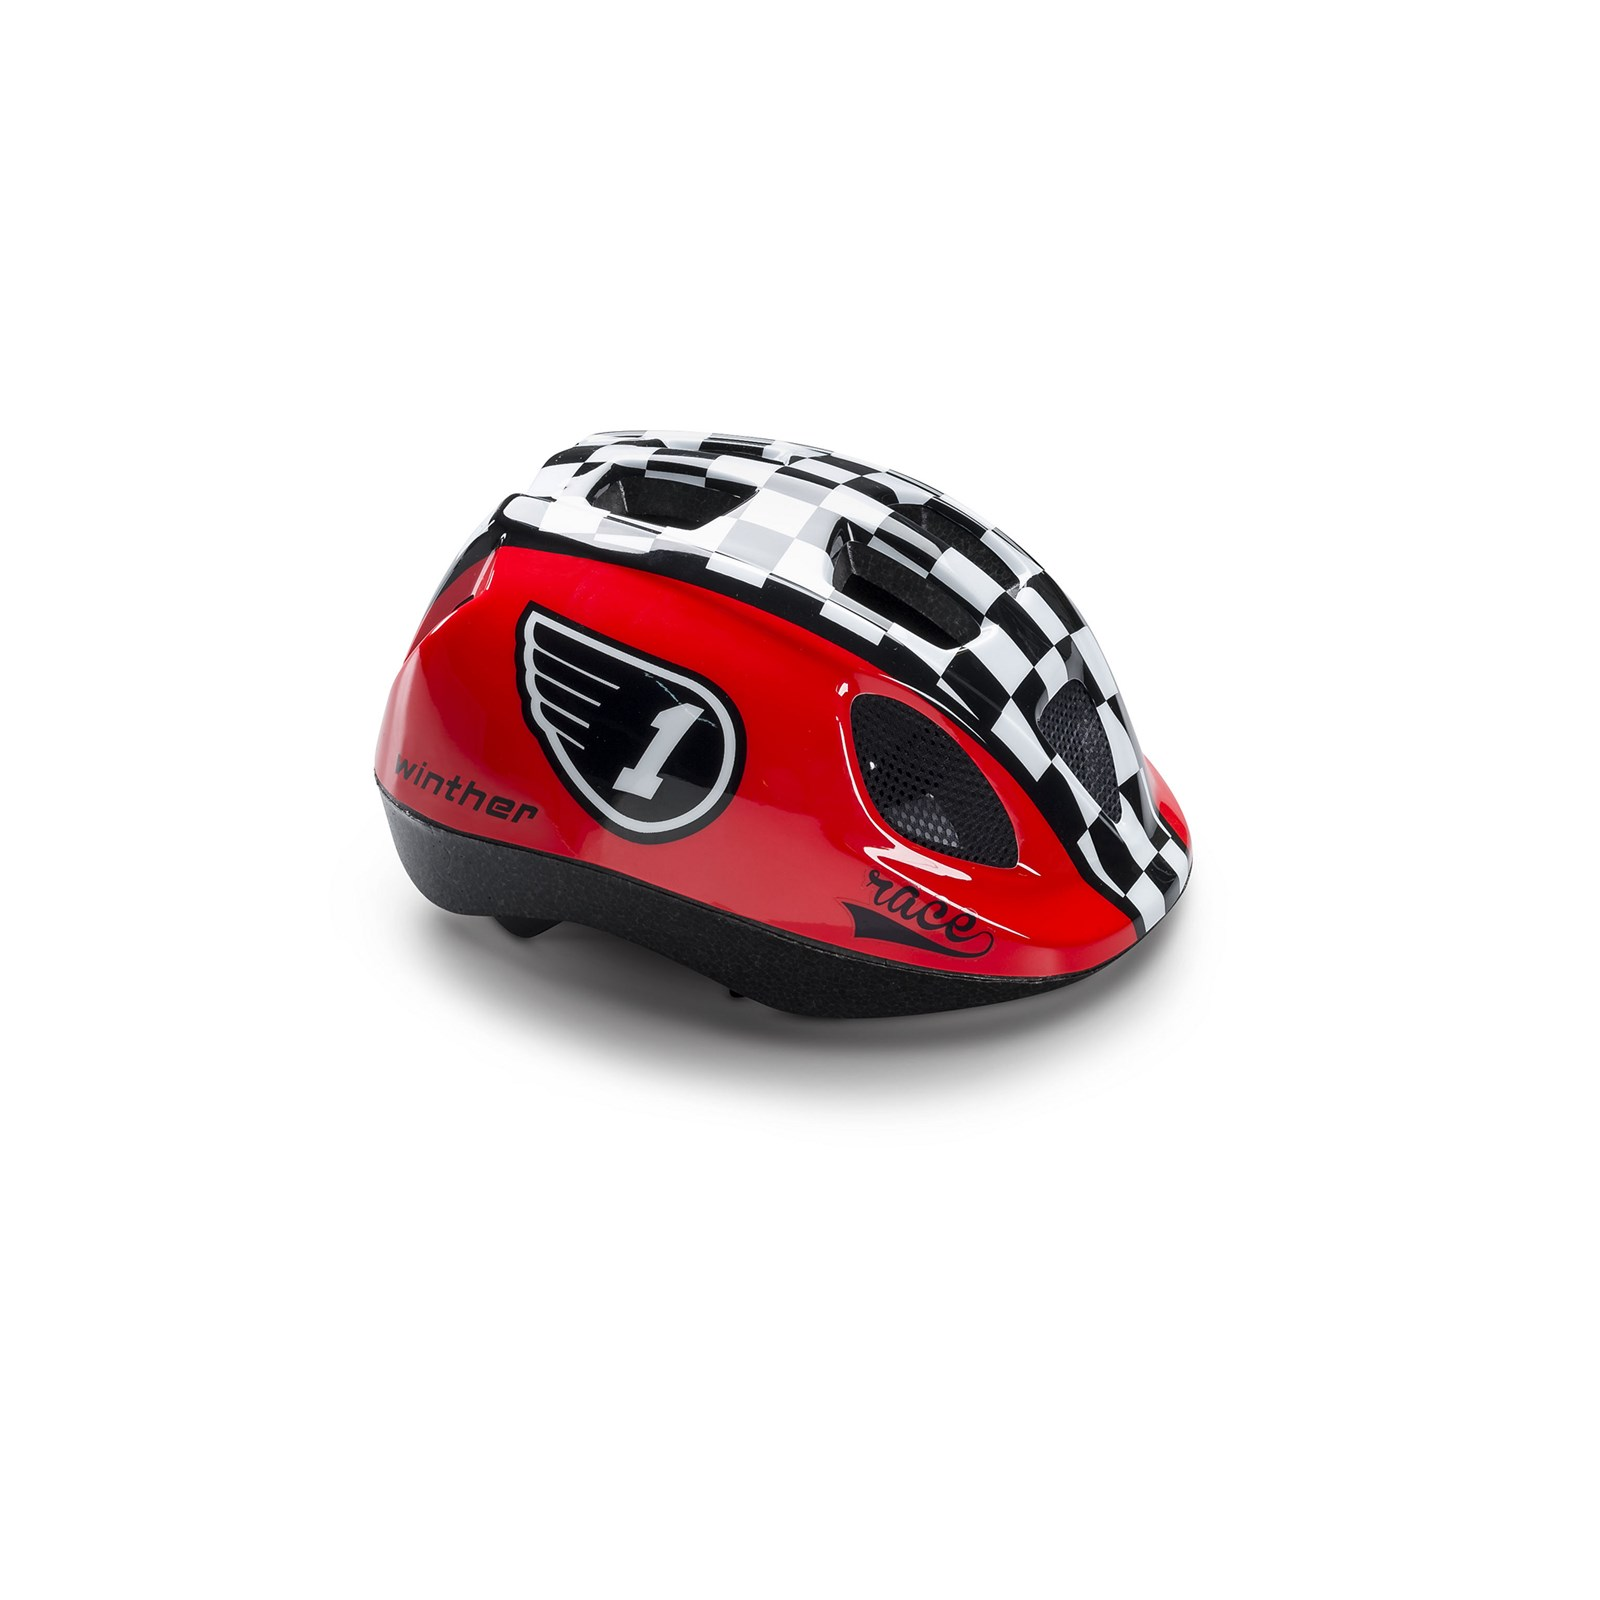 Winther Cycle Helmet